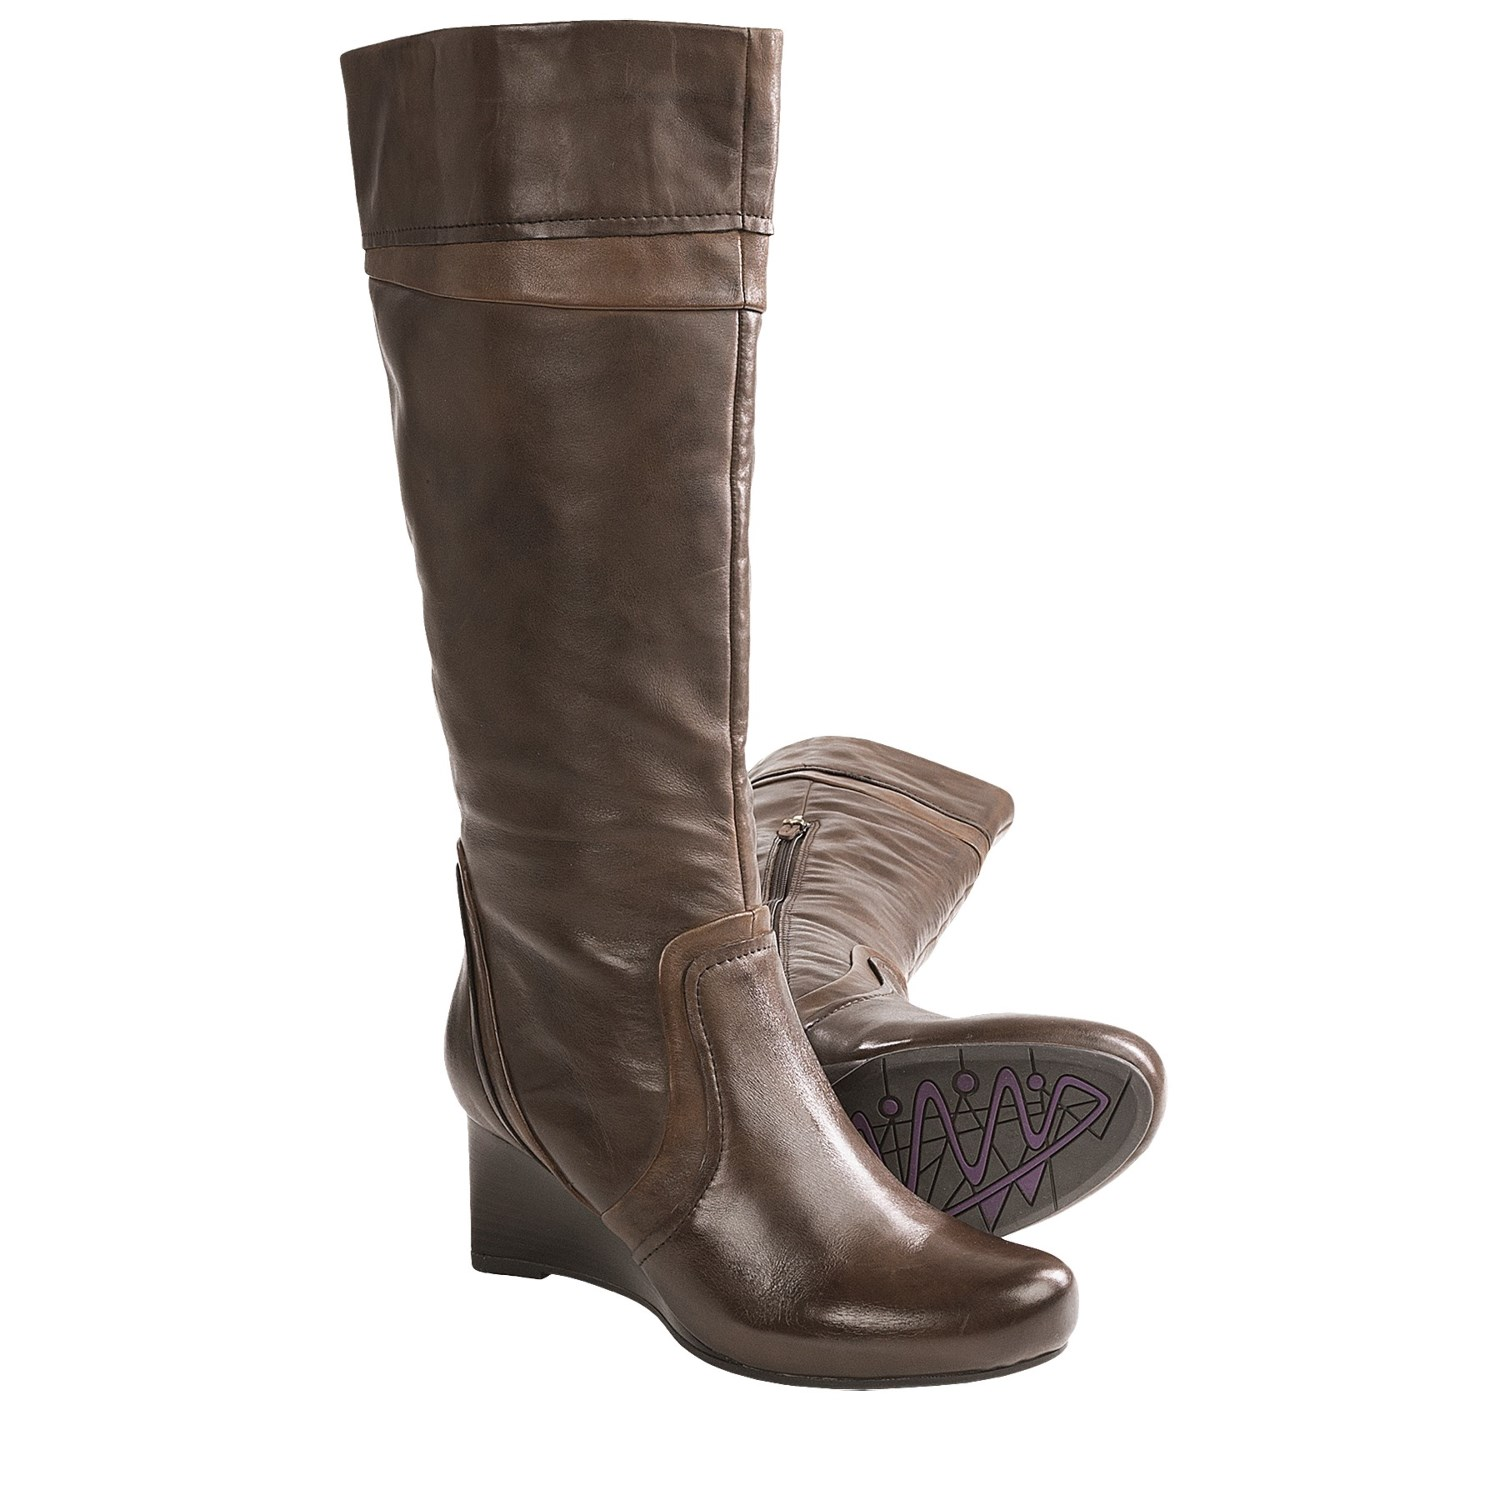 3932a6a6b2a7 Earthies Newcastle Tall Boots Leather For Women Save 63